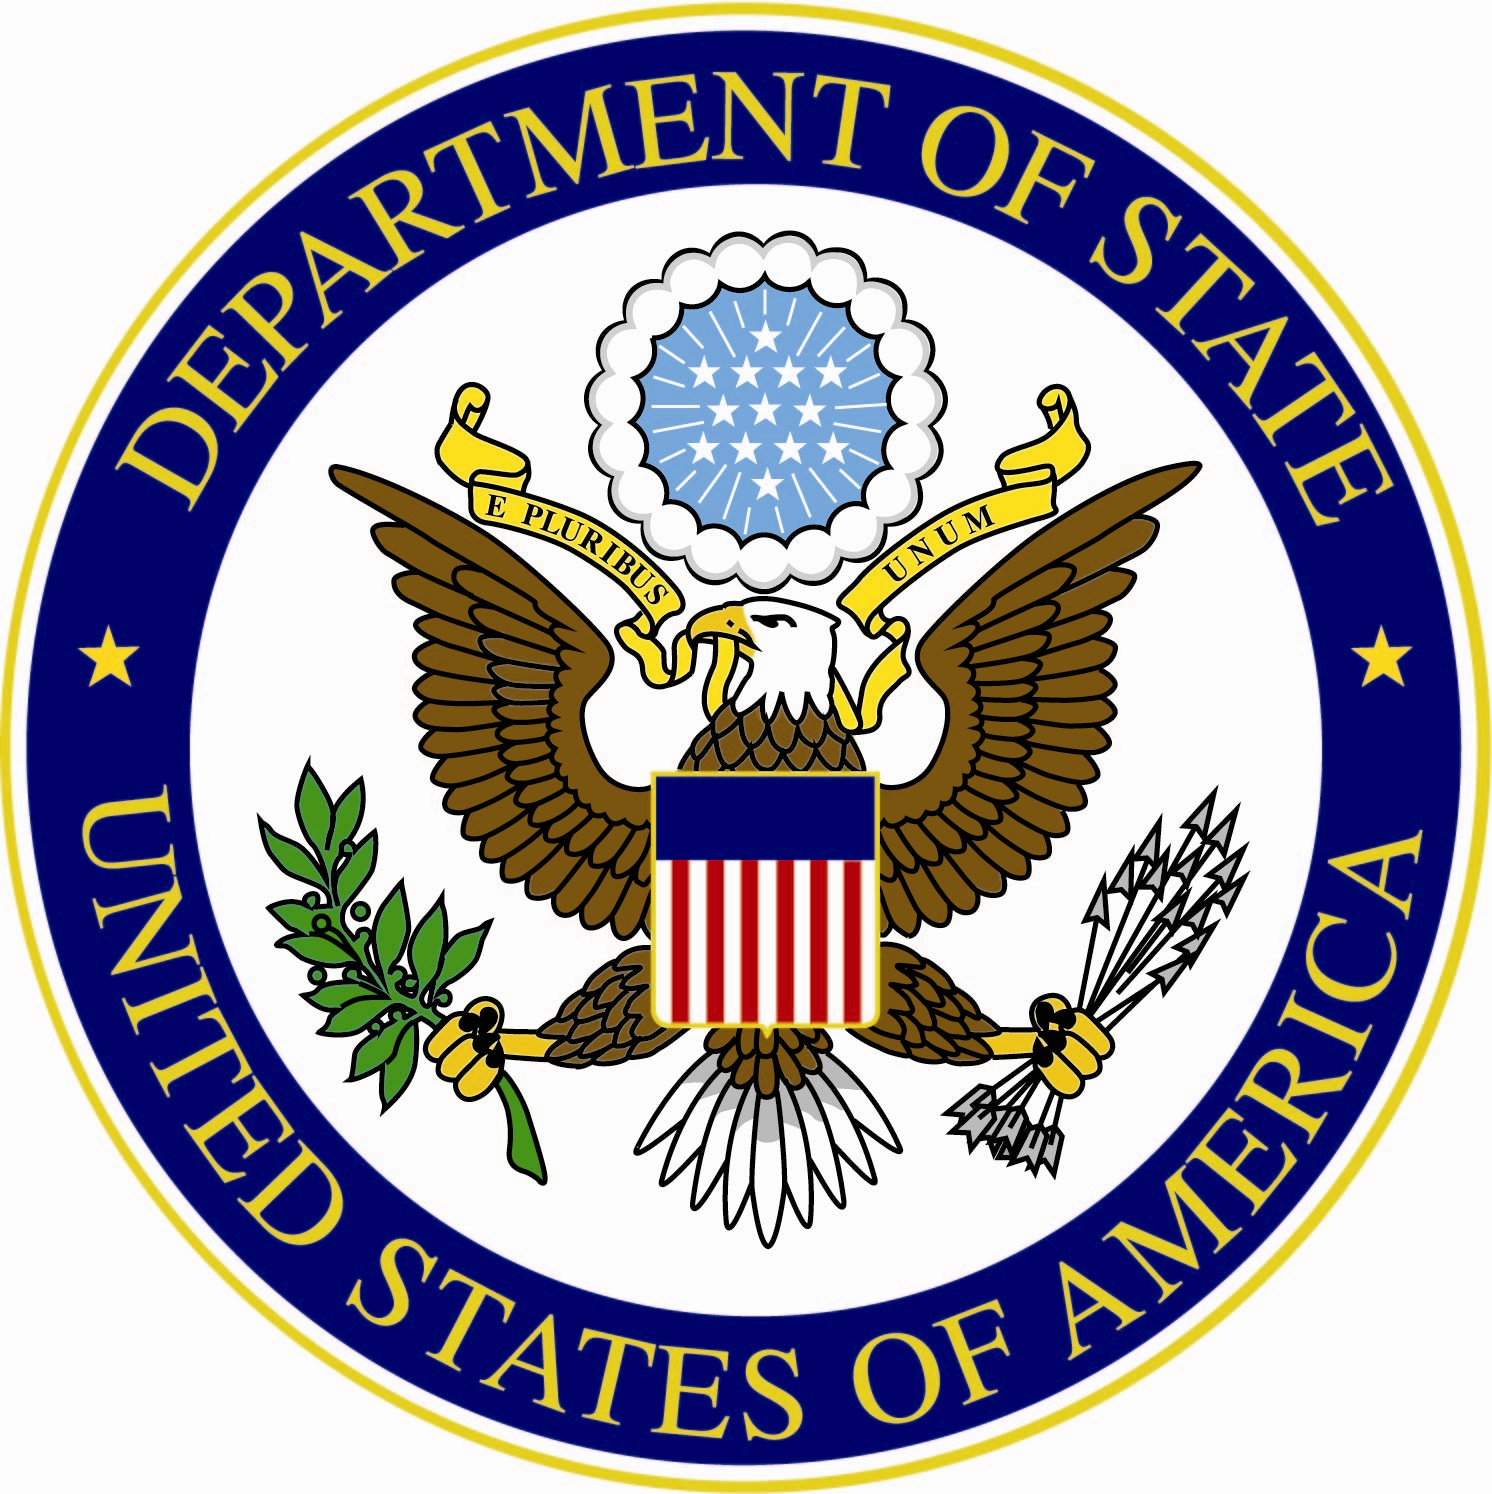 A circular medalion depicting the Department of State Logo surrounded by the agency name. The logo is an eagle with an american flag shield over its torso clutching a branch and some arrows.